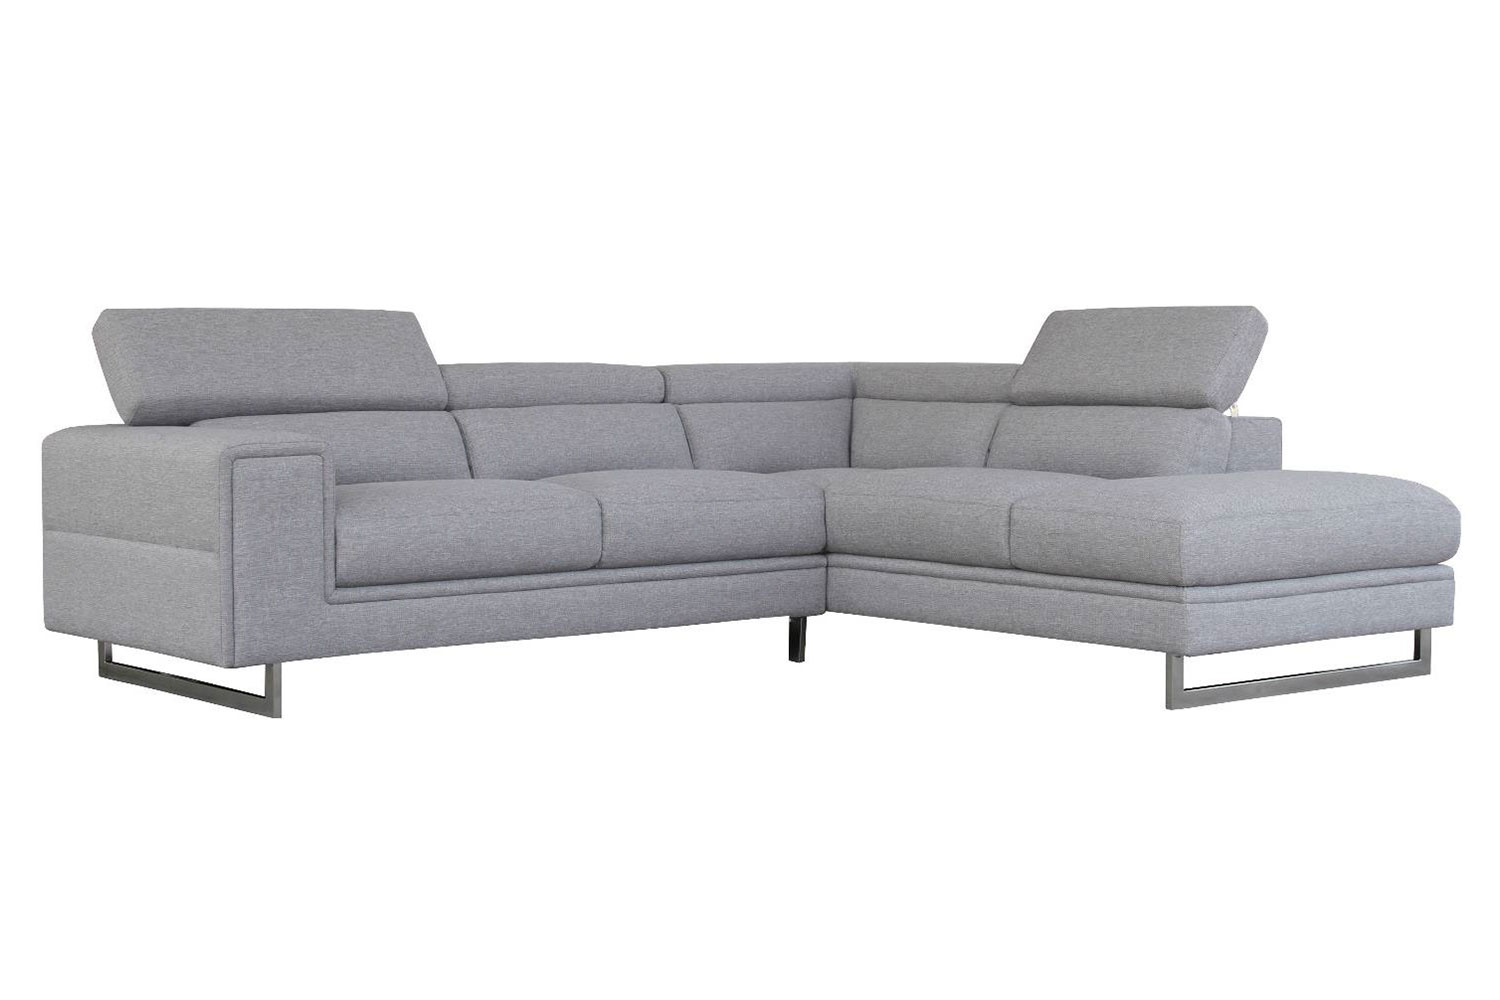 sofa w chaise small leather sleeper laguna 2 seater fabric with harvey norman new zealand